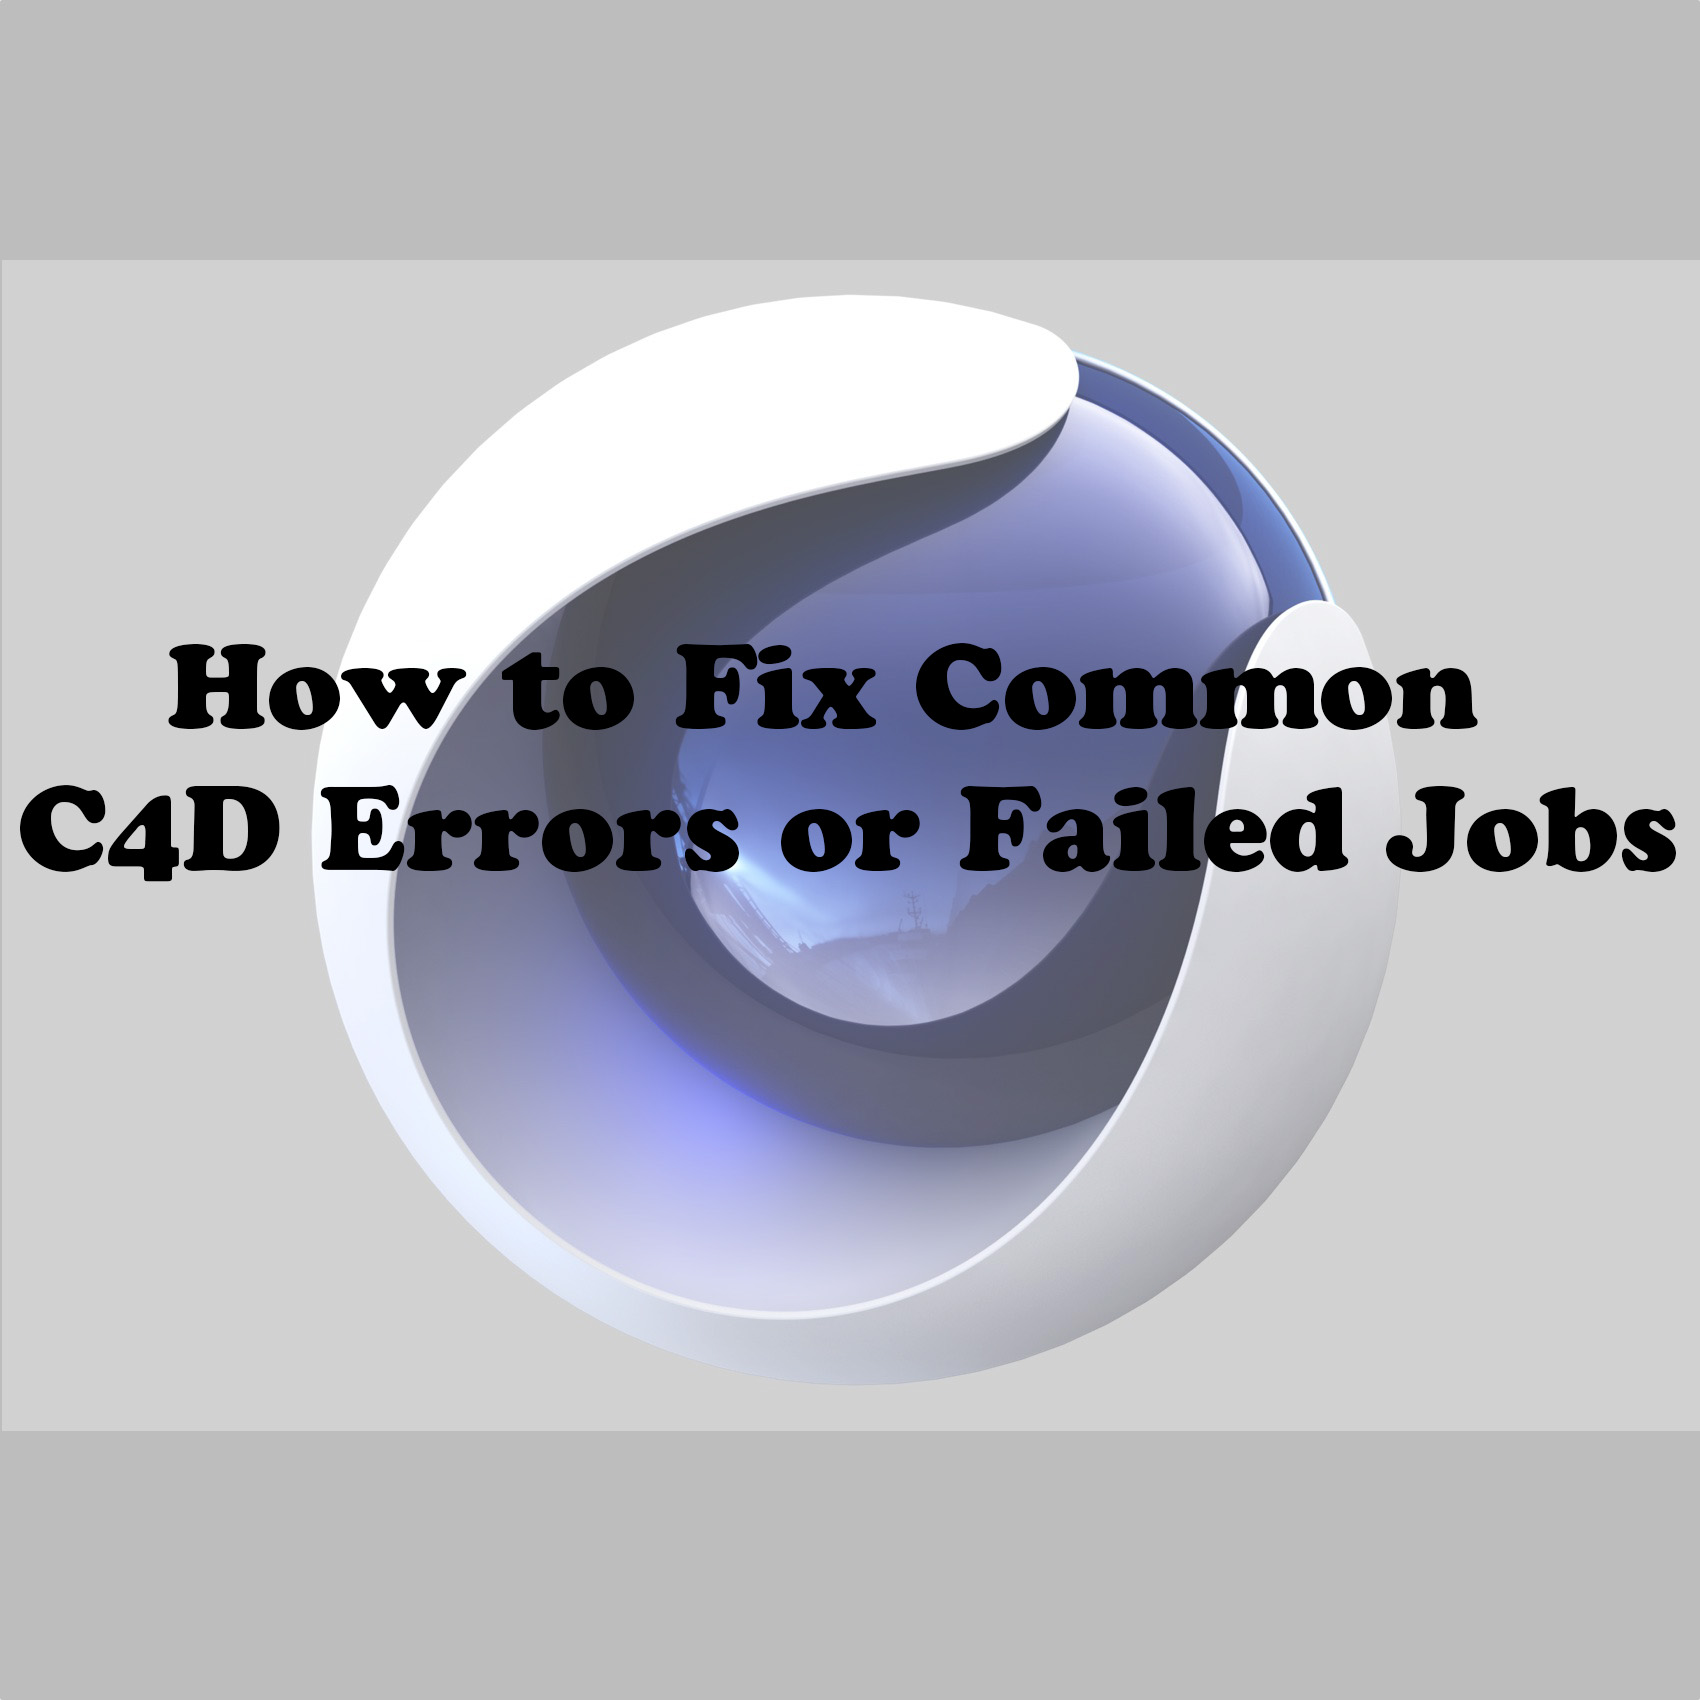 How to Fix Common C4D Errors or Failed Jobs